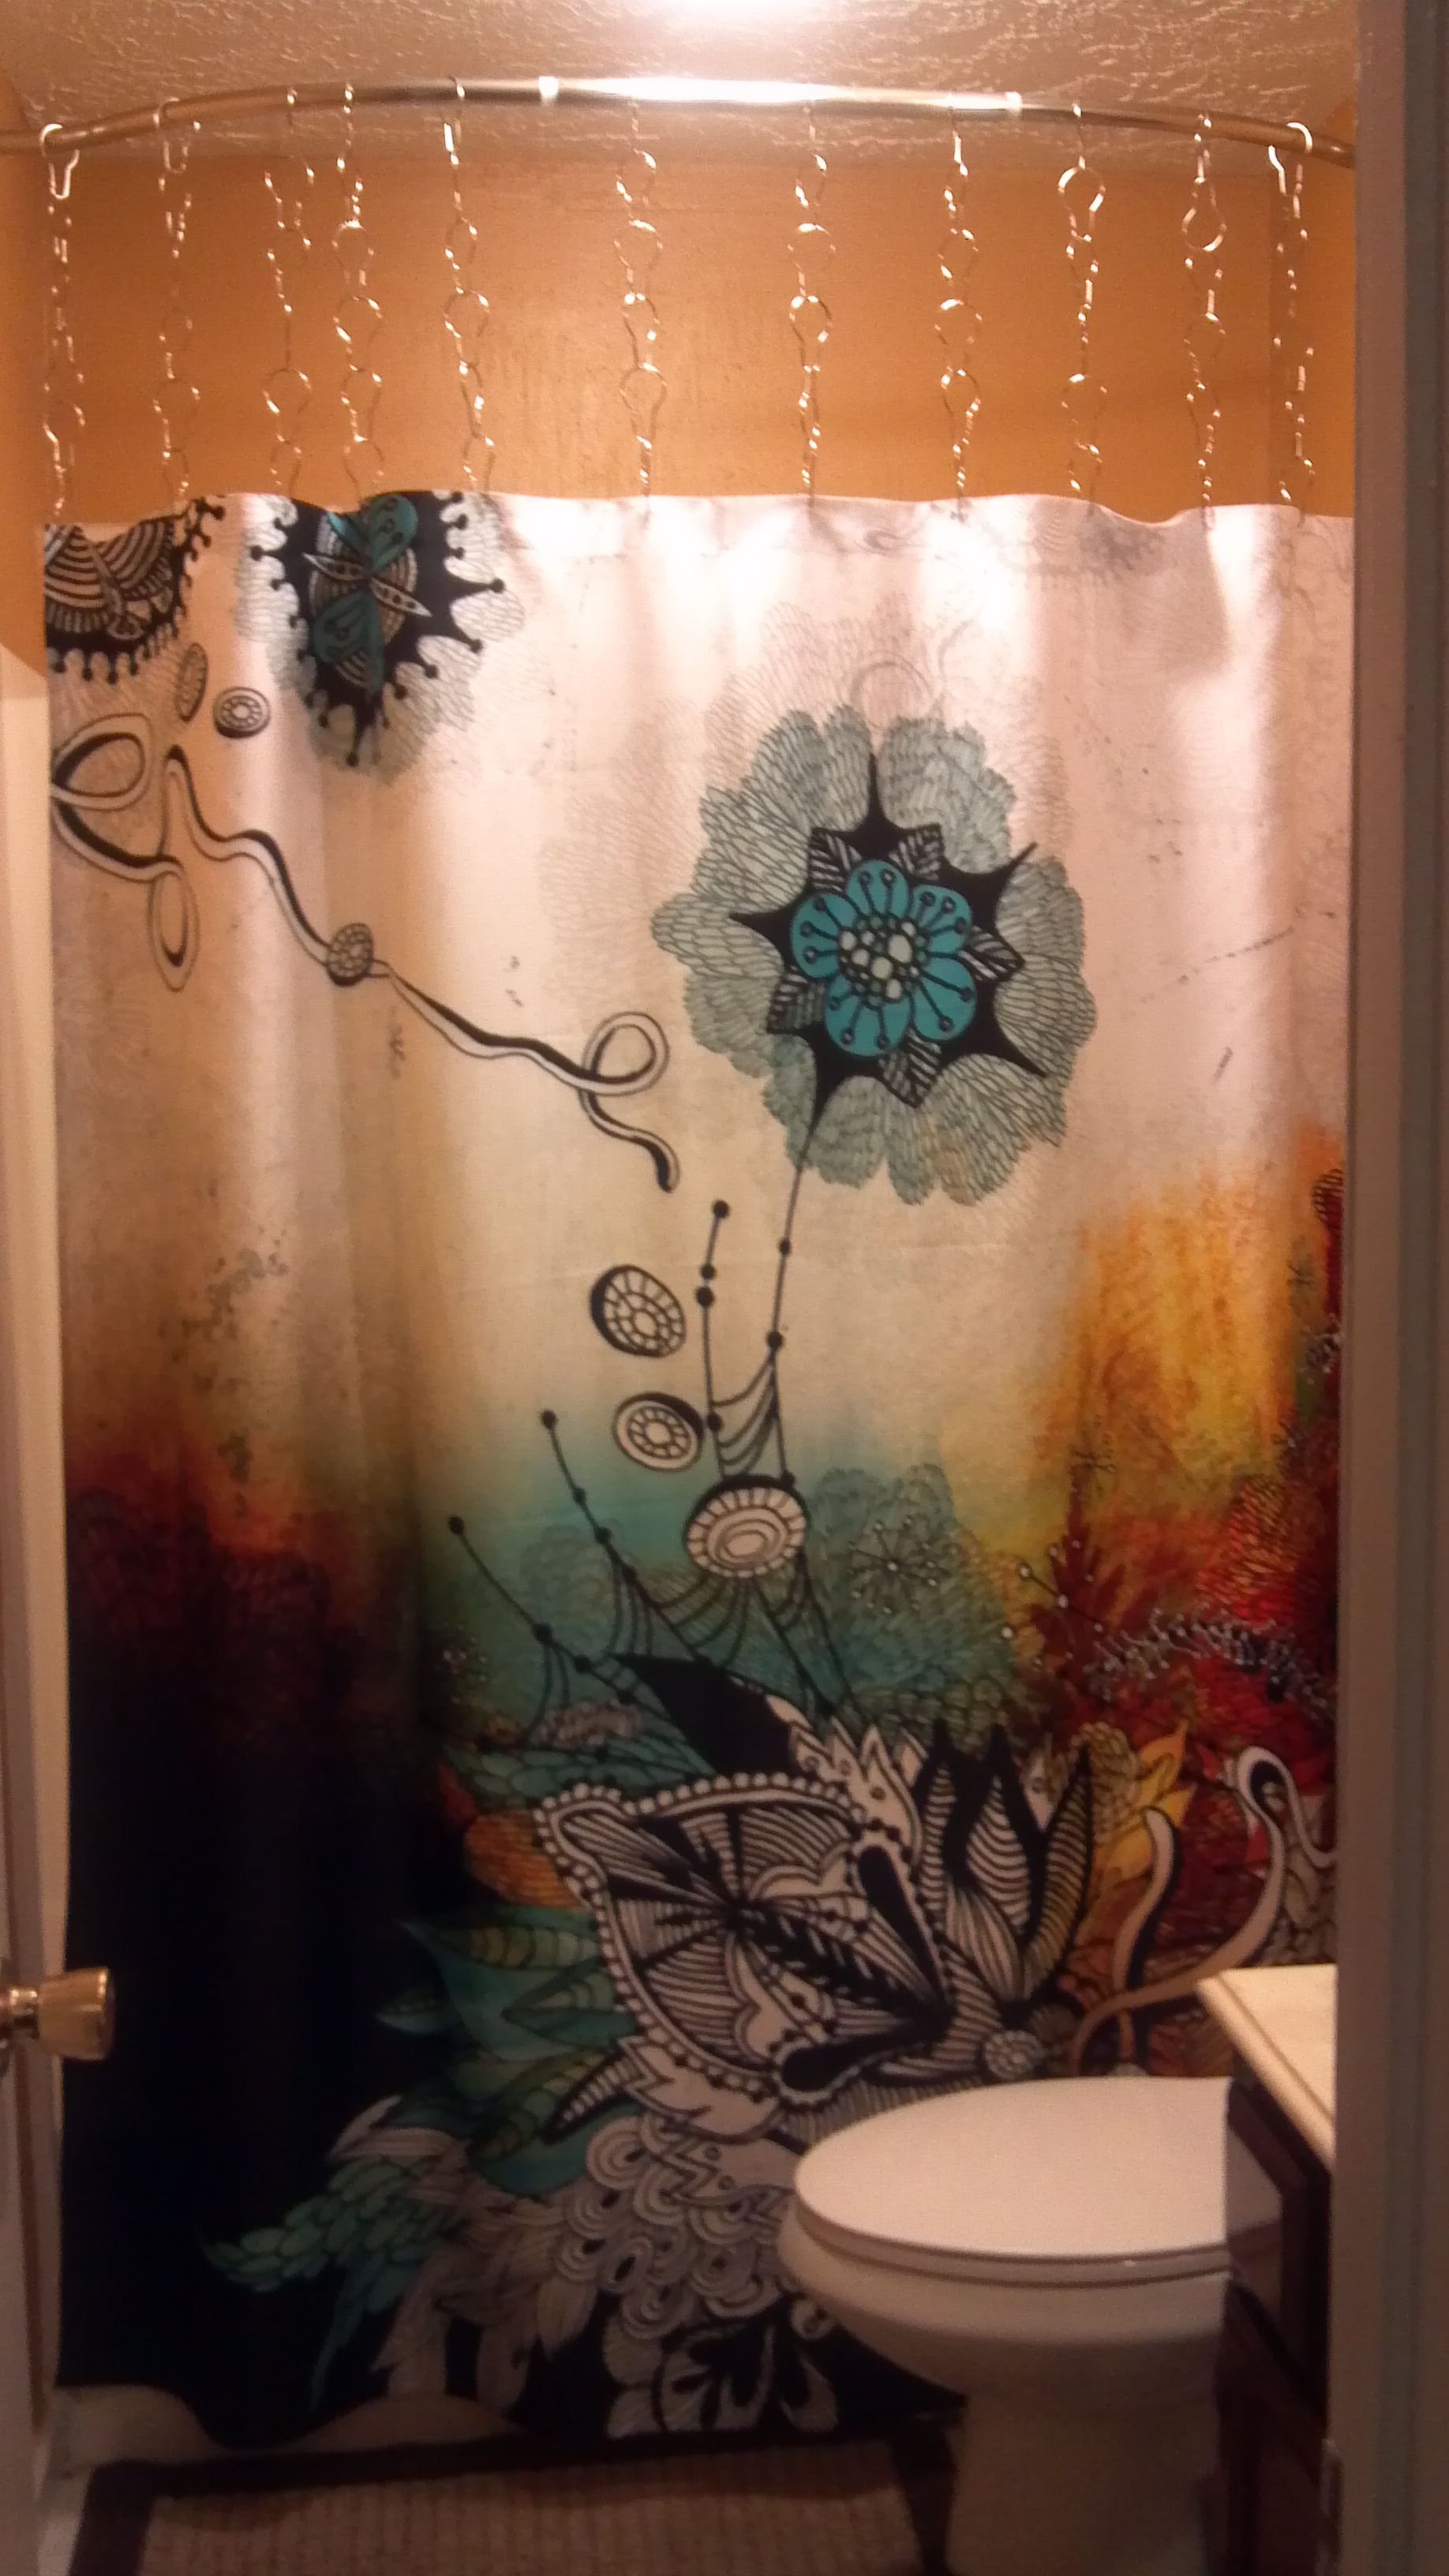 Found Curtain Amazon Wanted Curtain To Look Longer So Bought Curtain Rings From Home Depot Couple Of Dollars Per Gold Walls Printed Shower Curtain Curtains